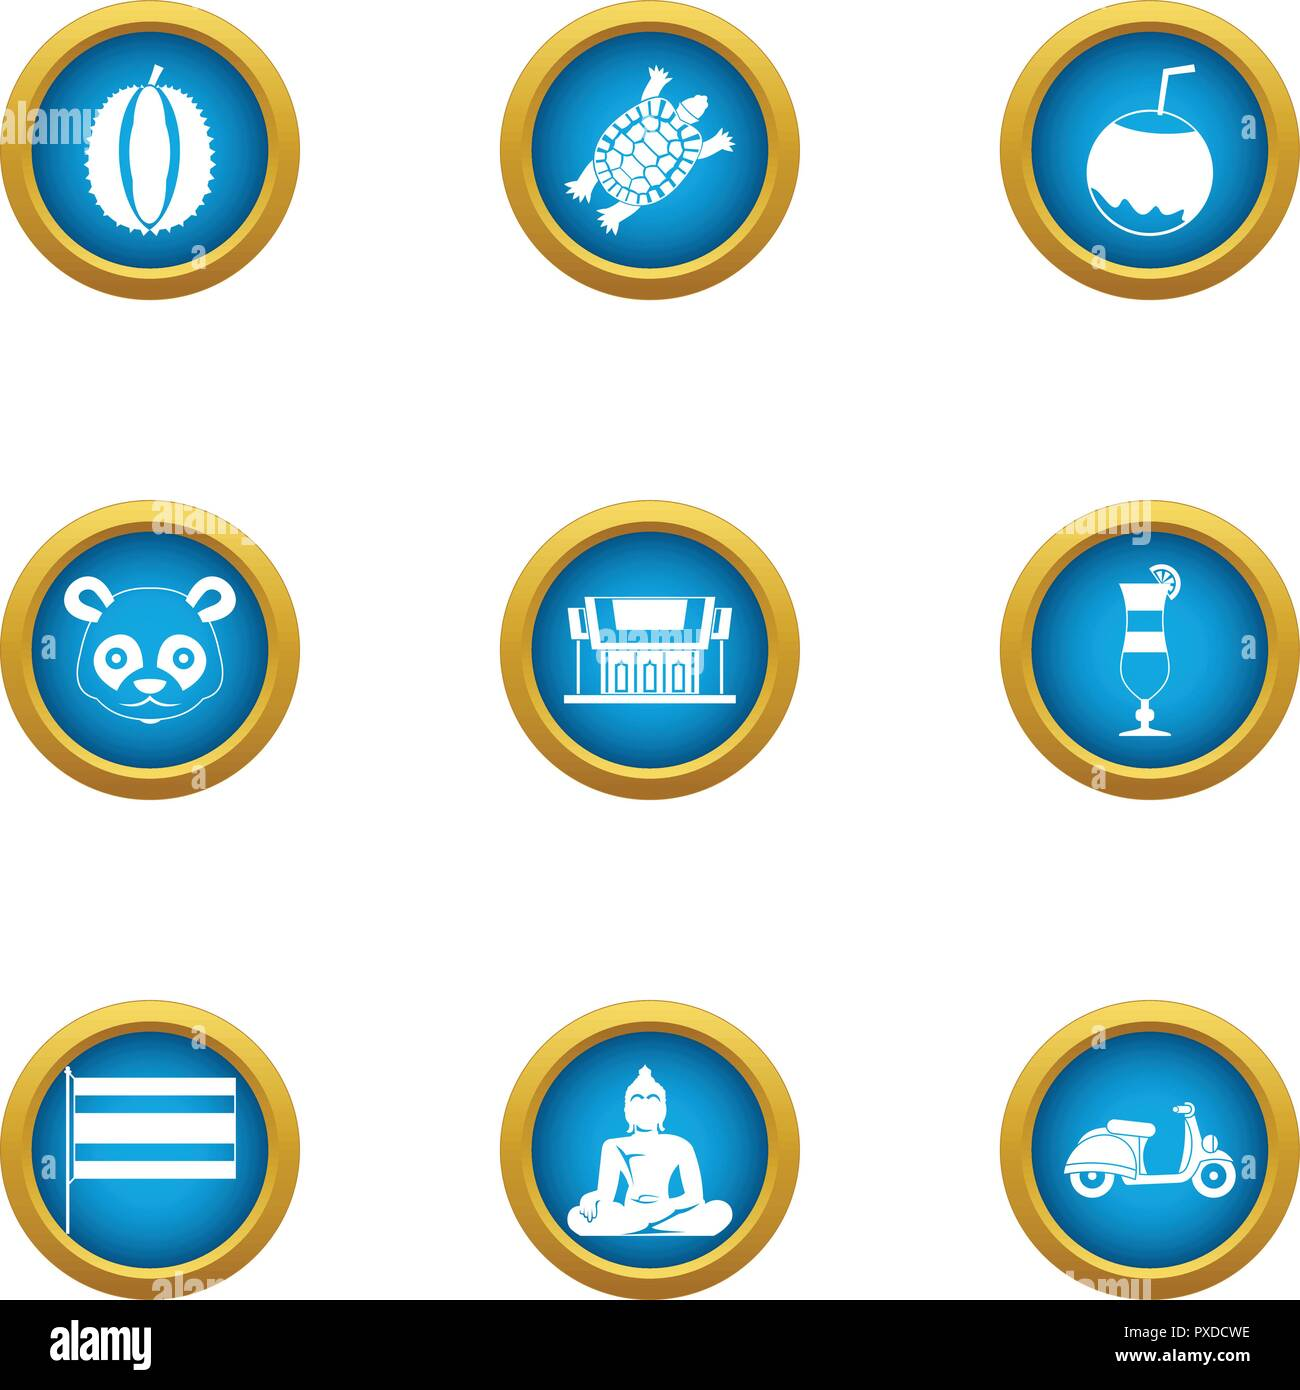 Asie icons set, flat style - Stock Image